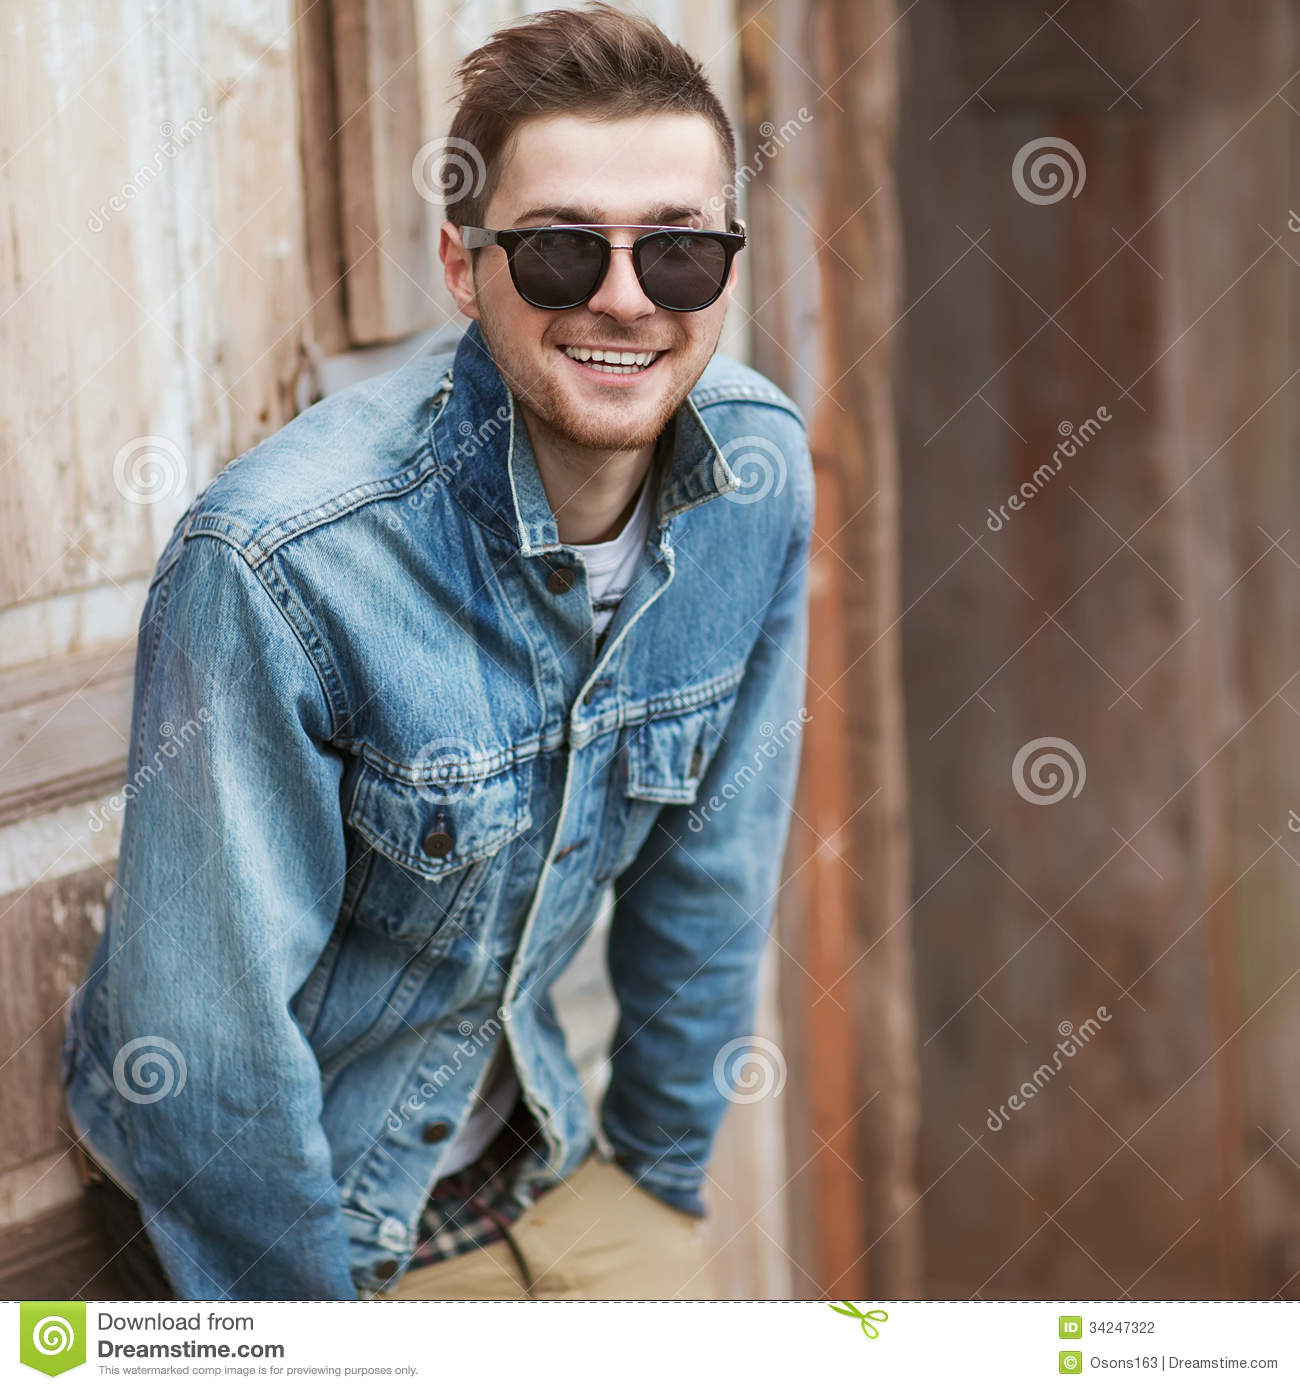 Hipster style guy stock photo. Image of model, hair ...